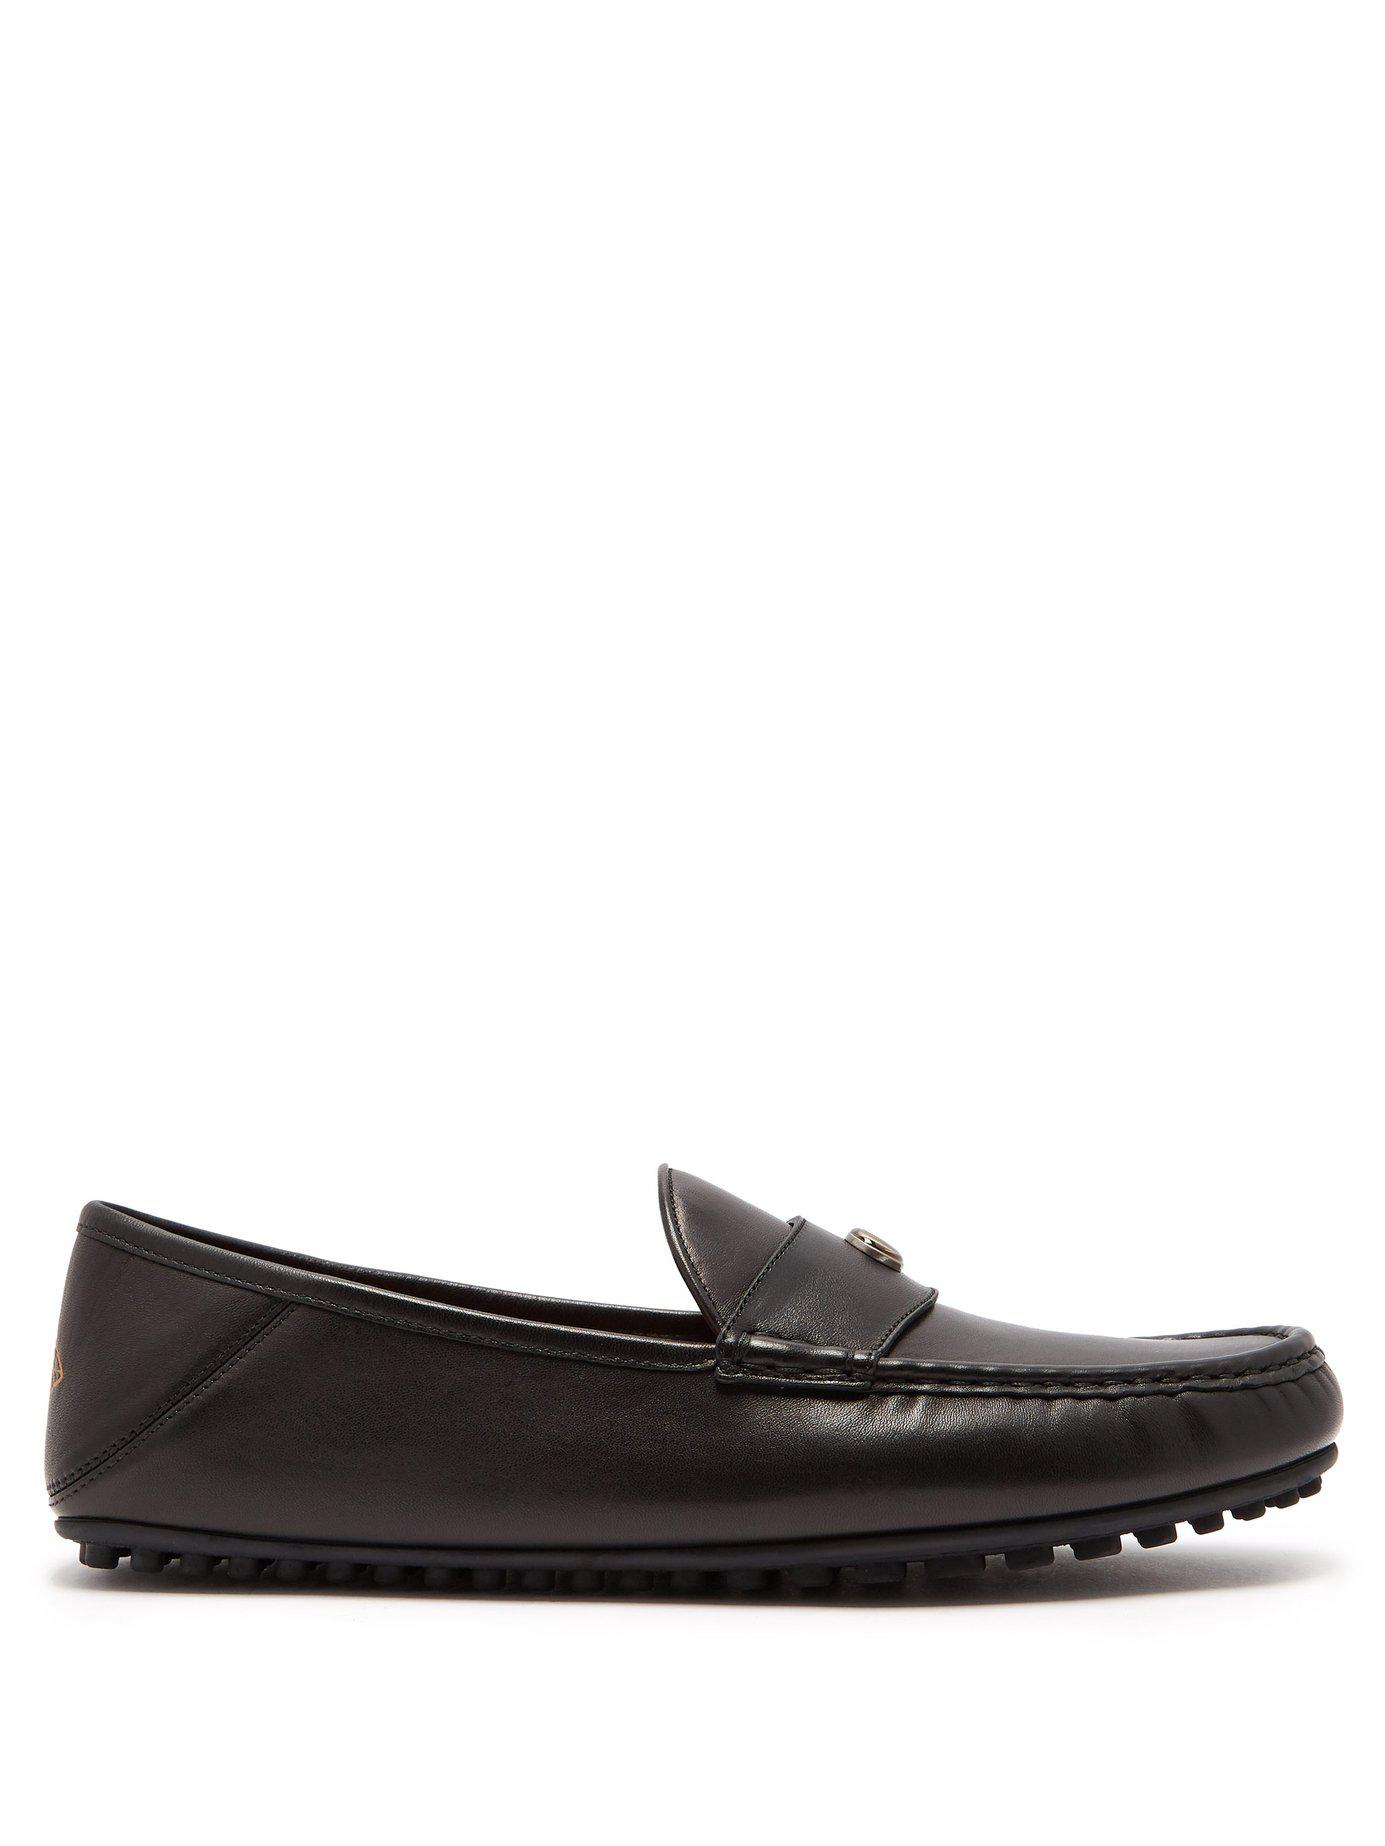 daf75552b Lyst - Gucci Soft Leather Moccasin Loafers in Black for Men